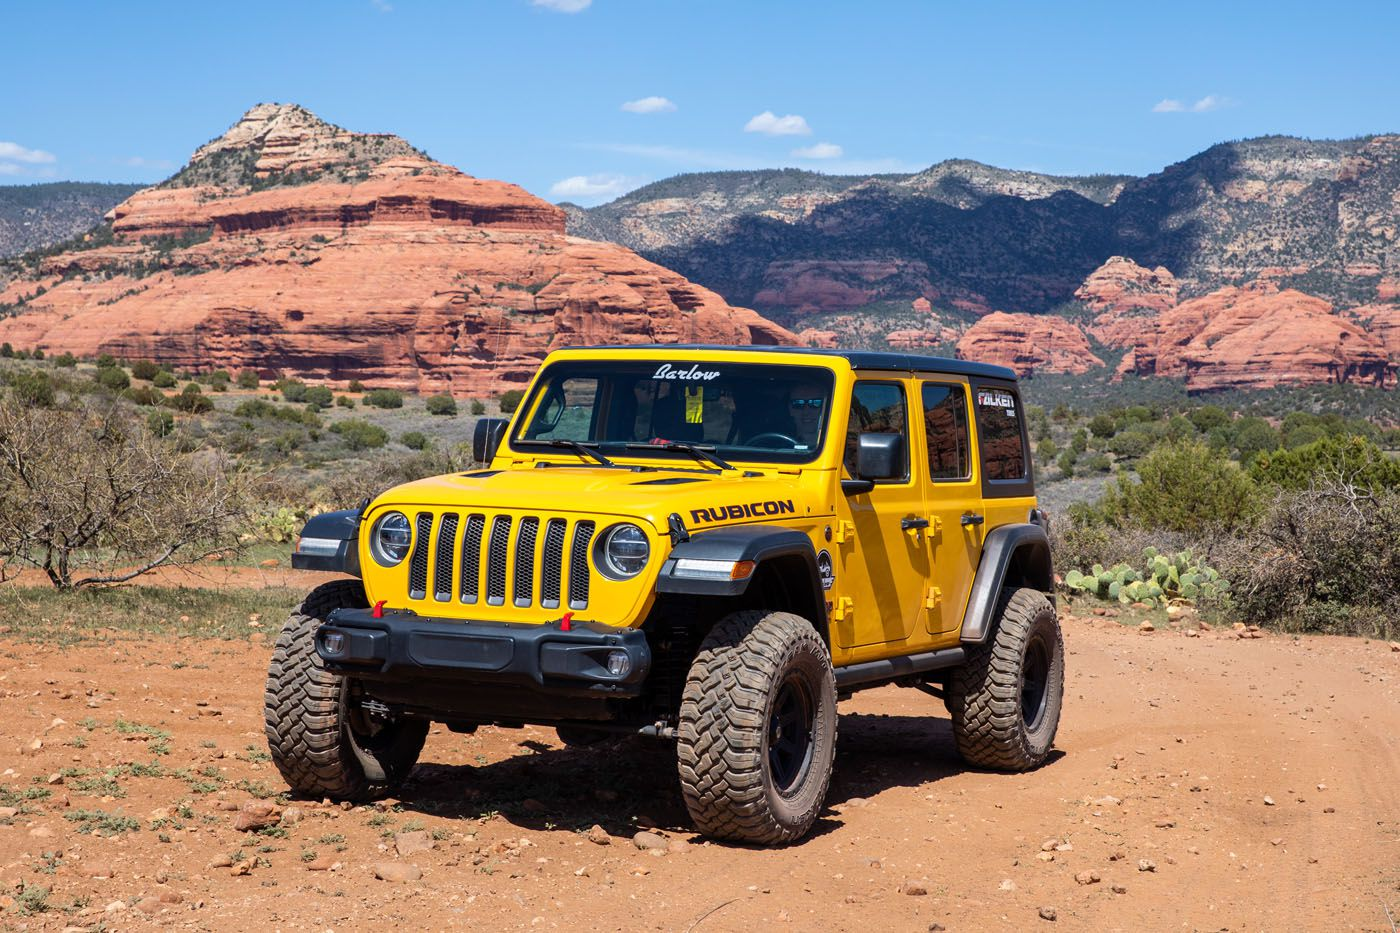 Our Jeep 4WD roads in Sedona